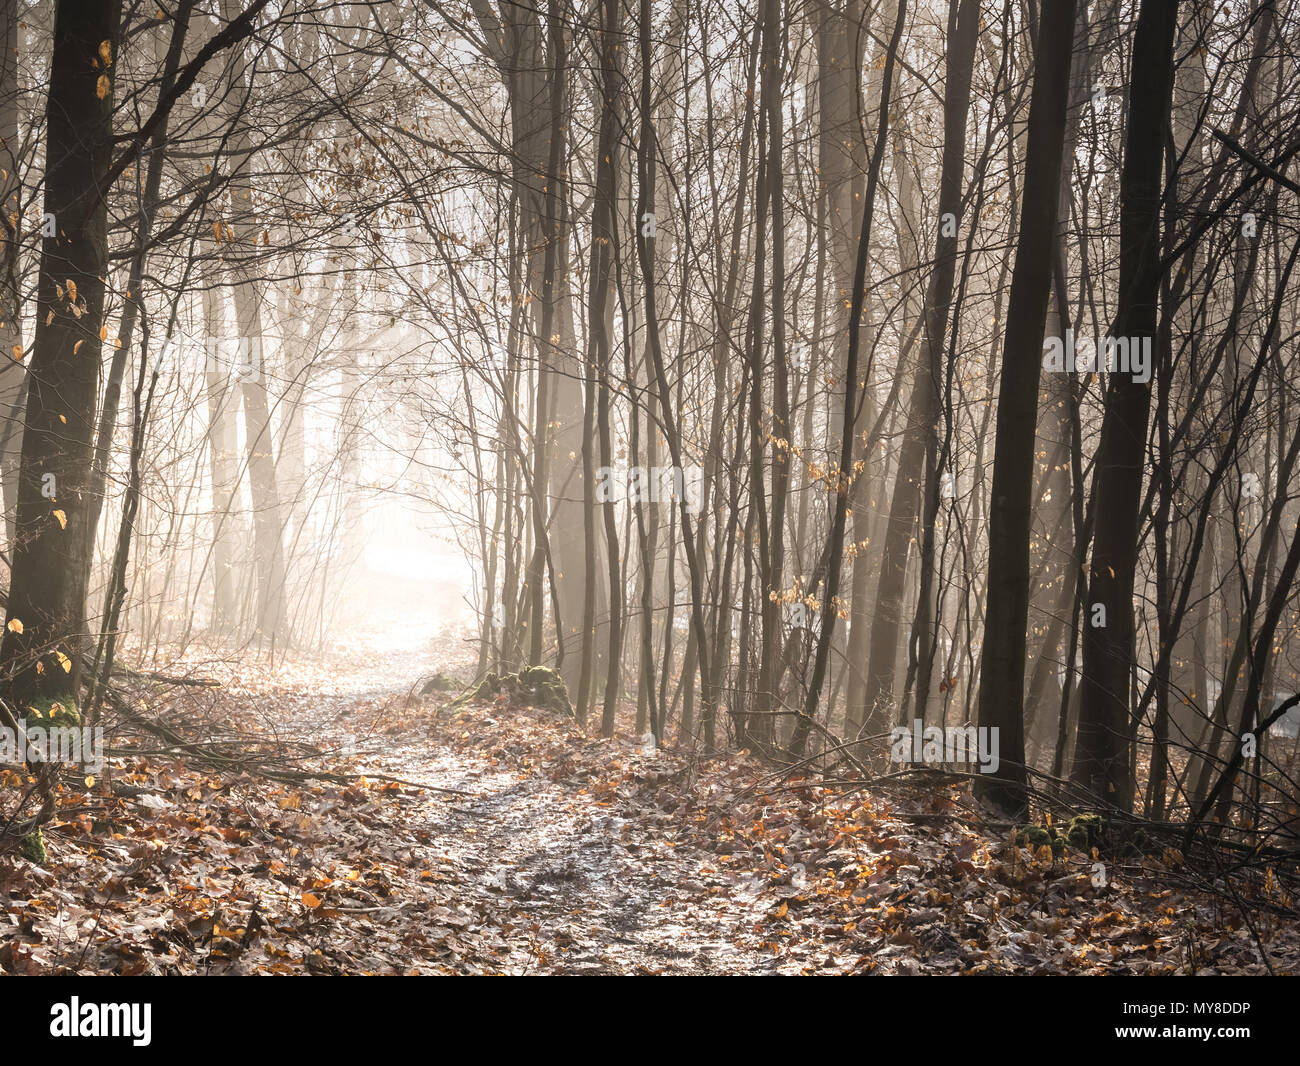 Hiking path leading through an enchanted, mystical looking forest into a light in the distance. (Germany) - Stock Image